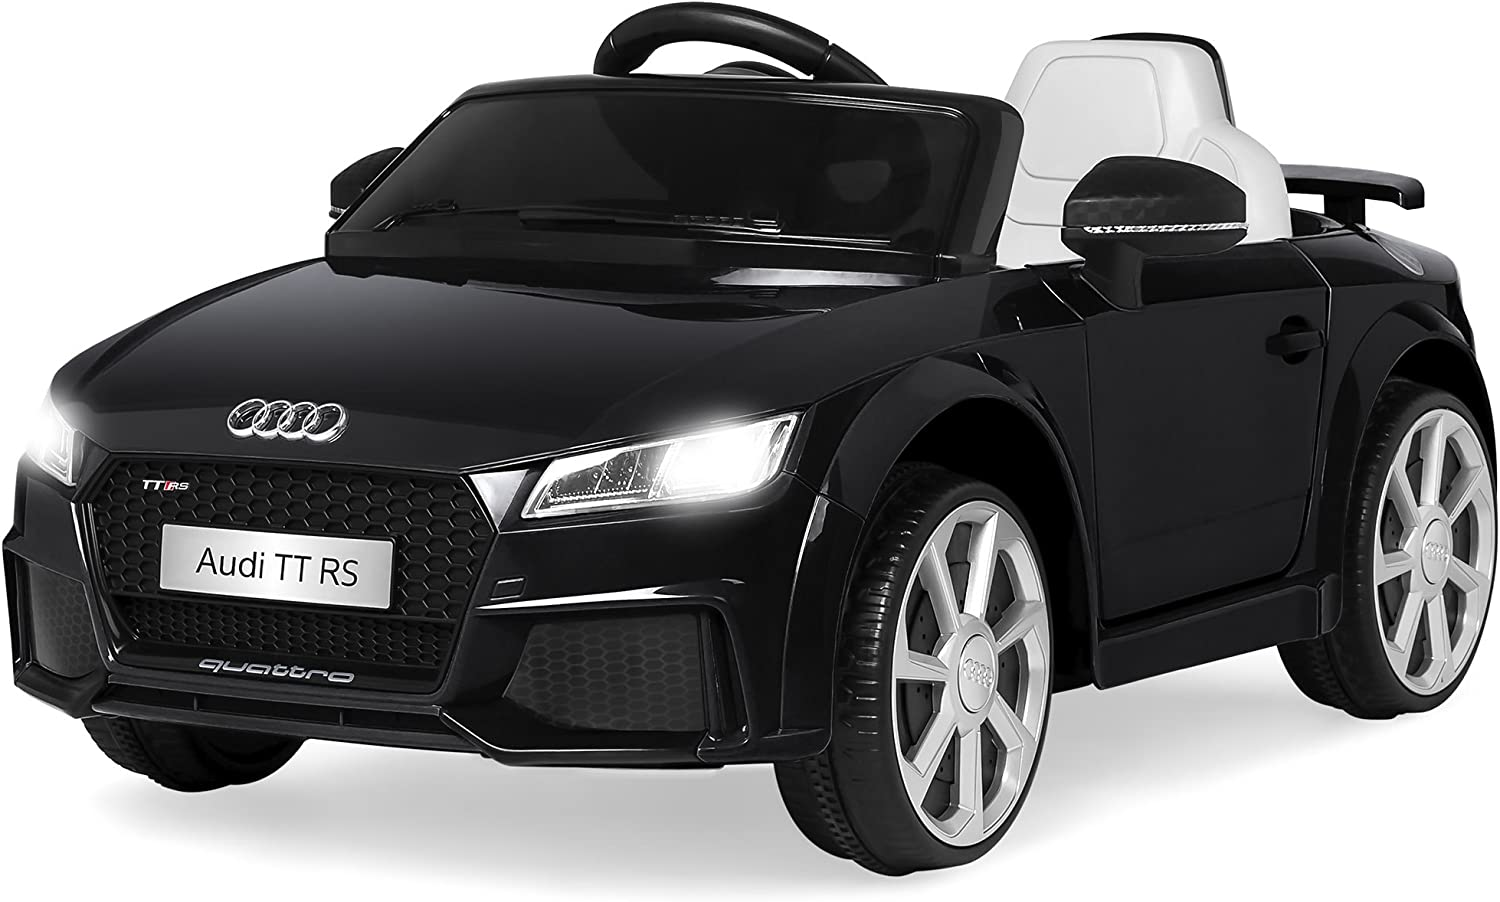 Best Choice Products 6V Kids Licensed Audi TT RS Ride On Car w/ Parent Control, 2 Speeds, Suspension, AUX Input - Black